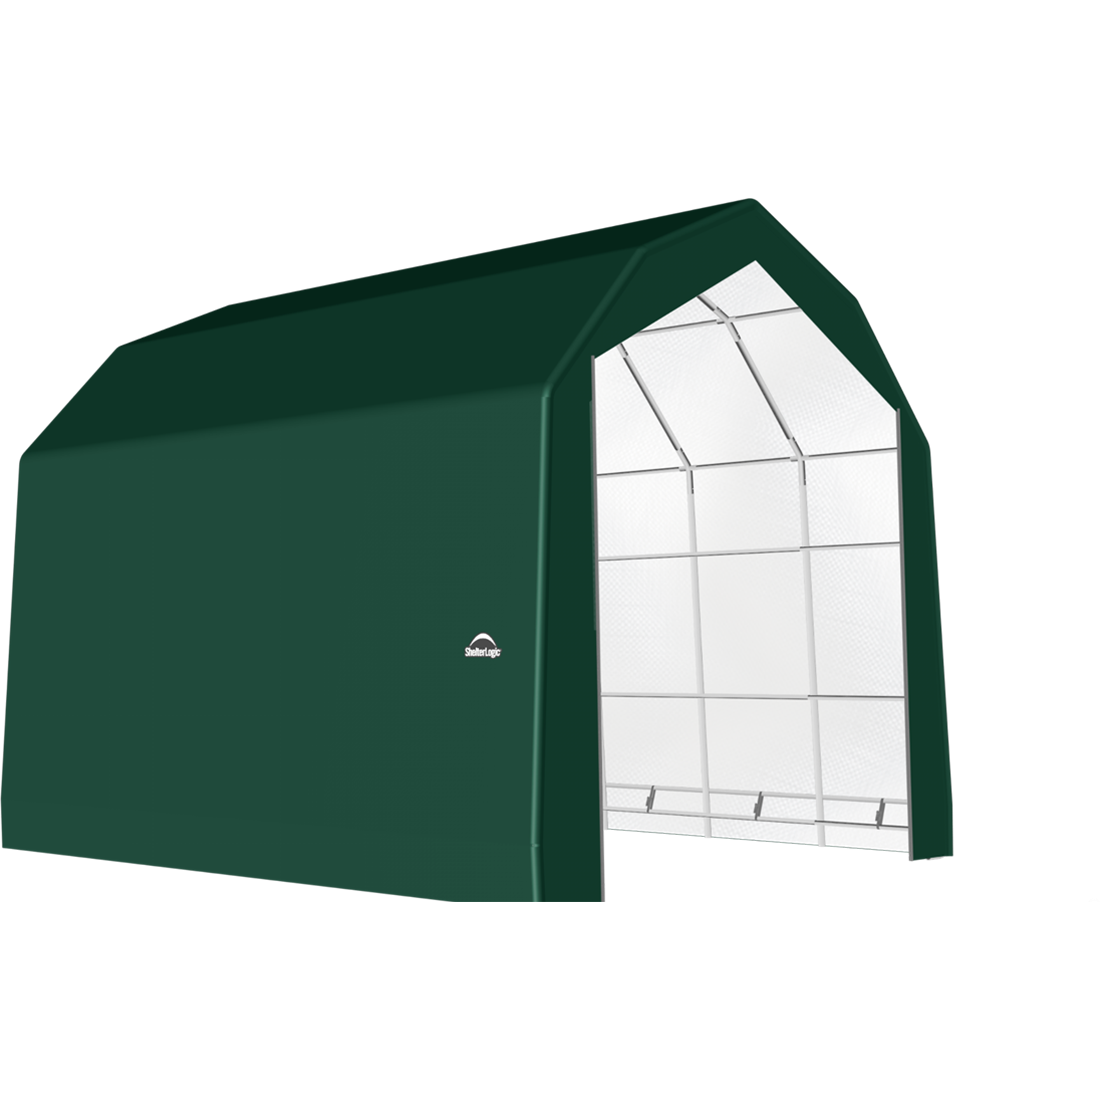 ShelterTech SP Series Barn Shelter, 20 ft. x 24 ft. x 18 ft. Heavy Duty PVC 14.5 oz. Green